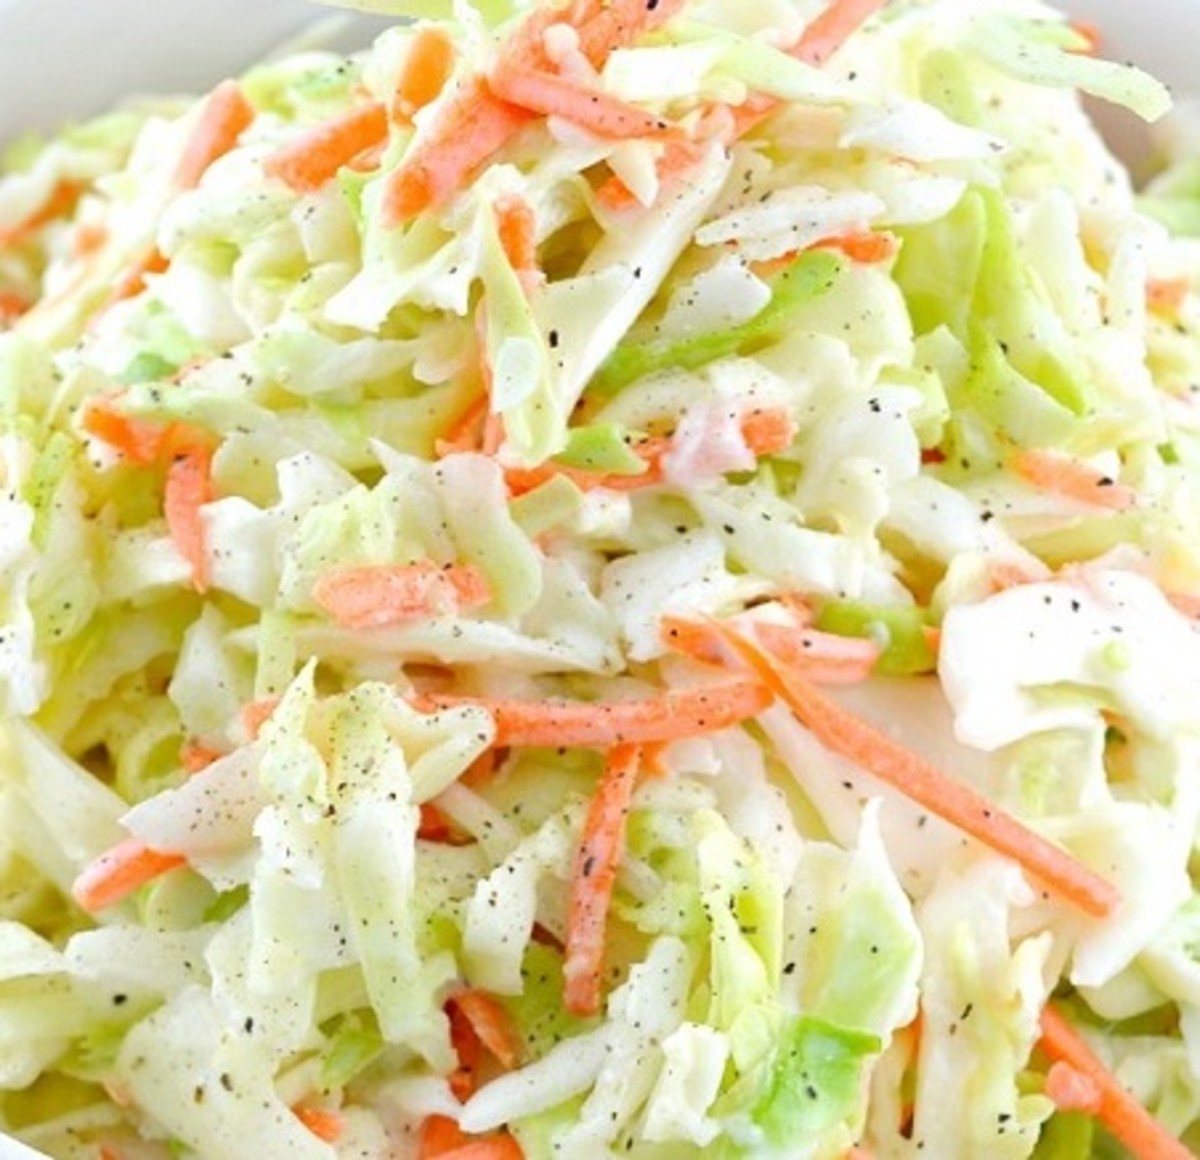 No one likes watery coleslaw!